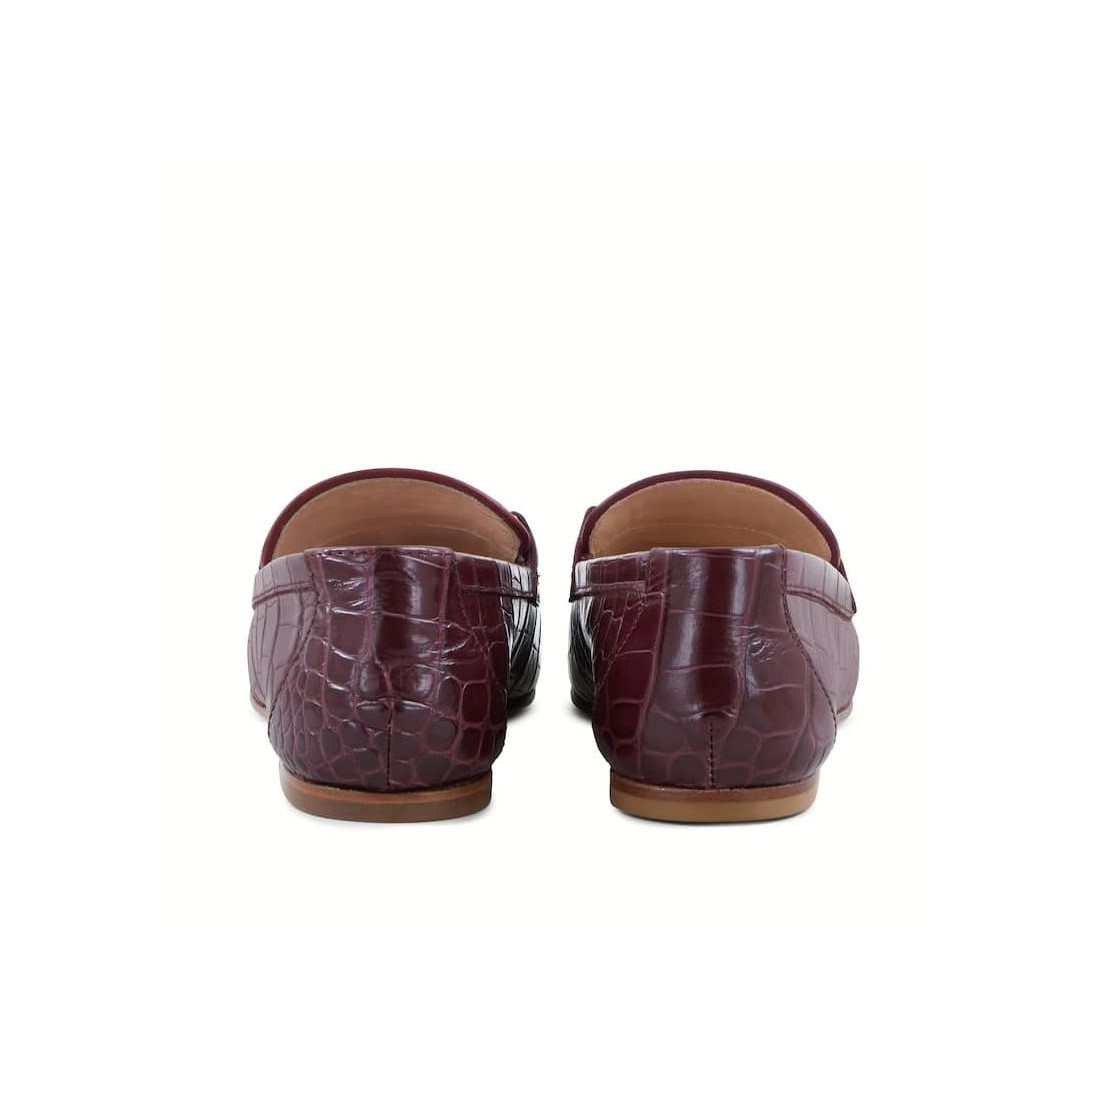 loafers woman tods xxw79a0z370jo9r810 3922